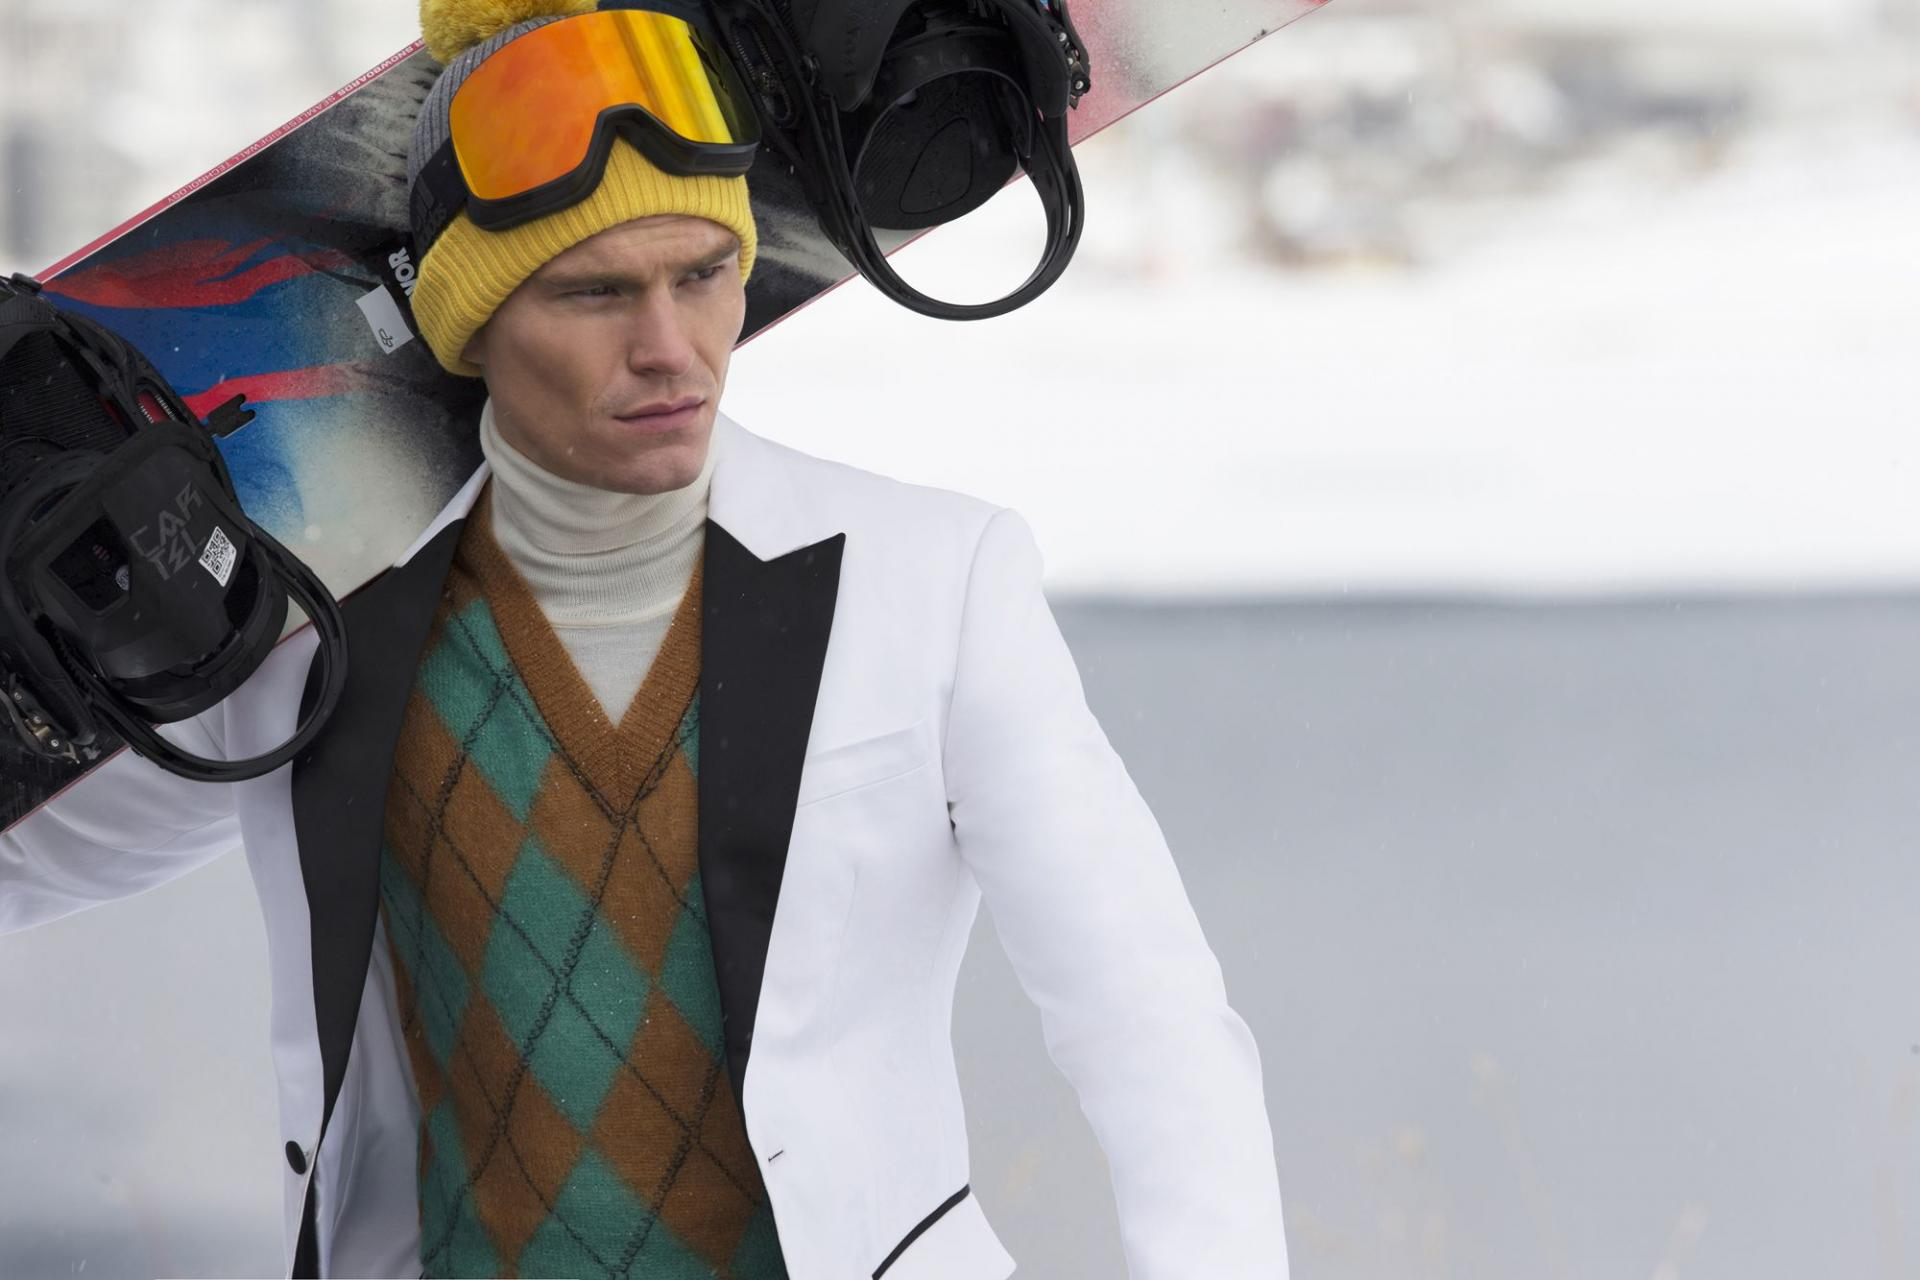 On The Slopes With Oliver Cheshire: The Interview